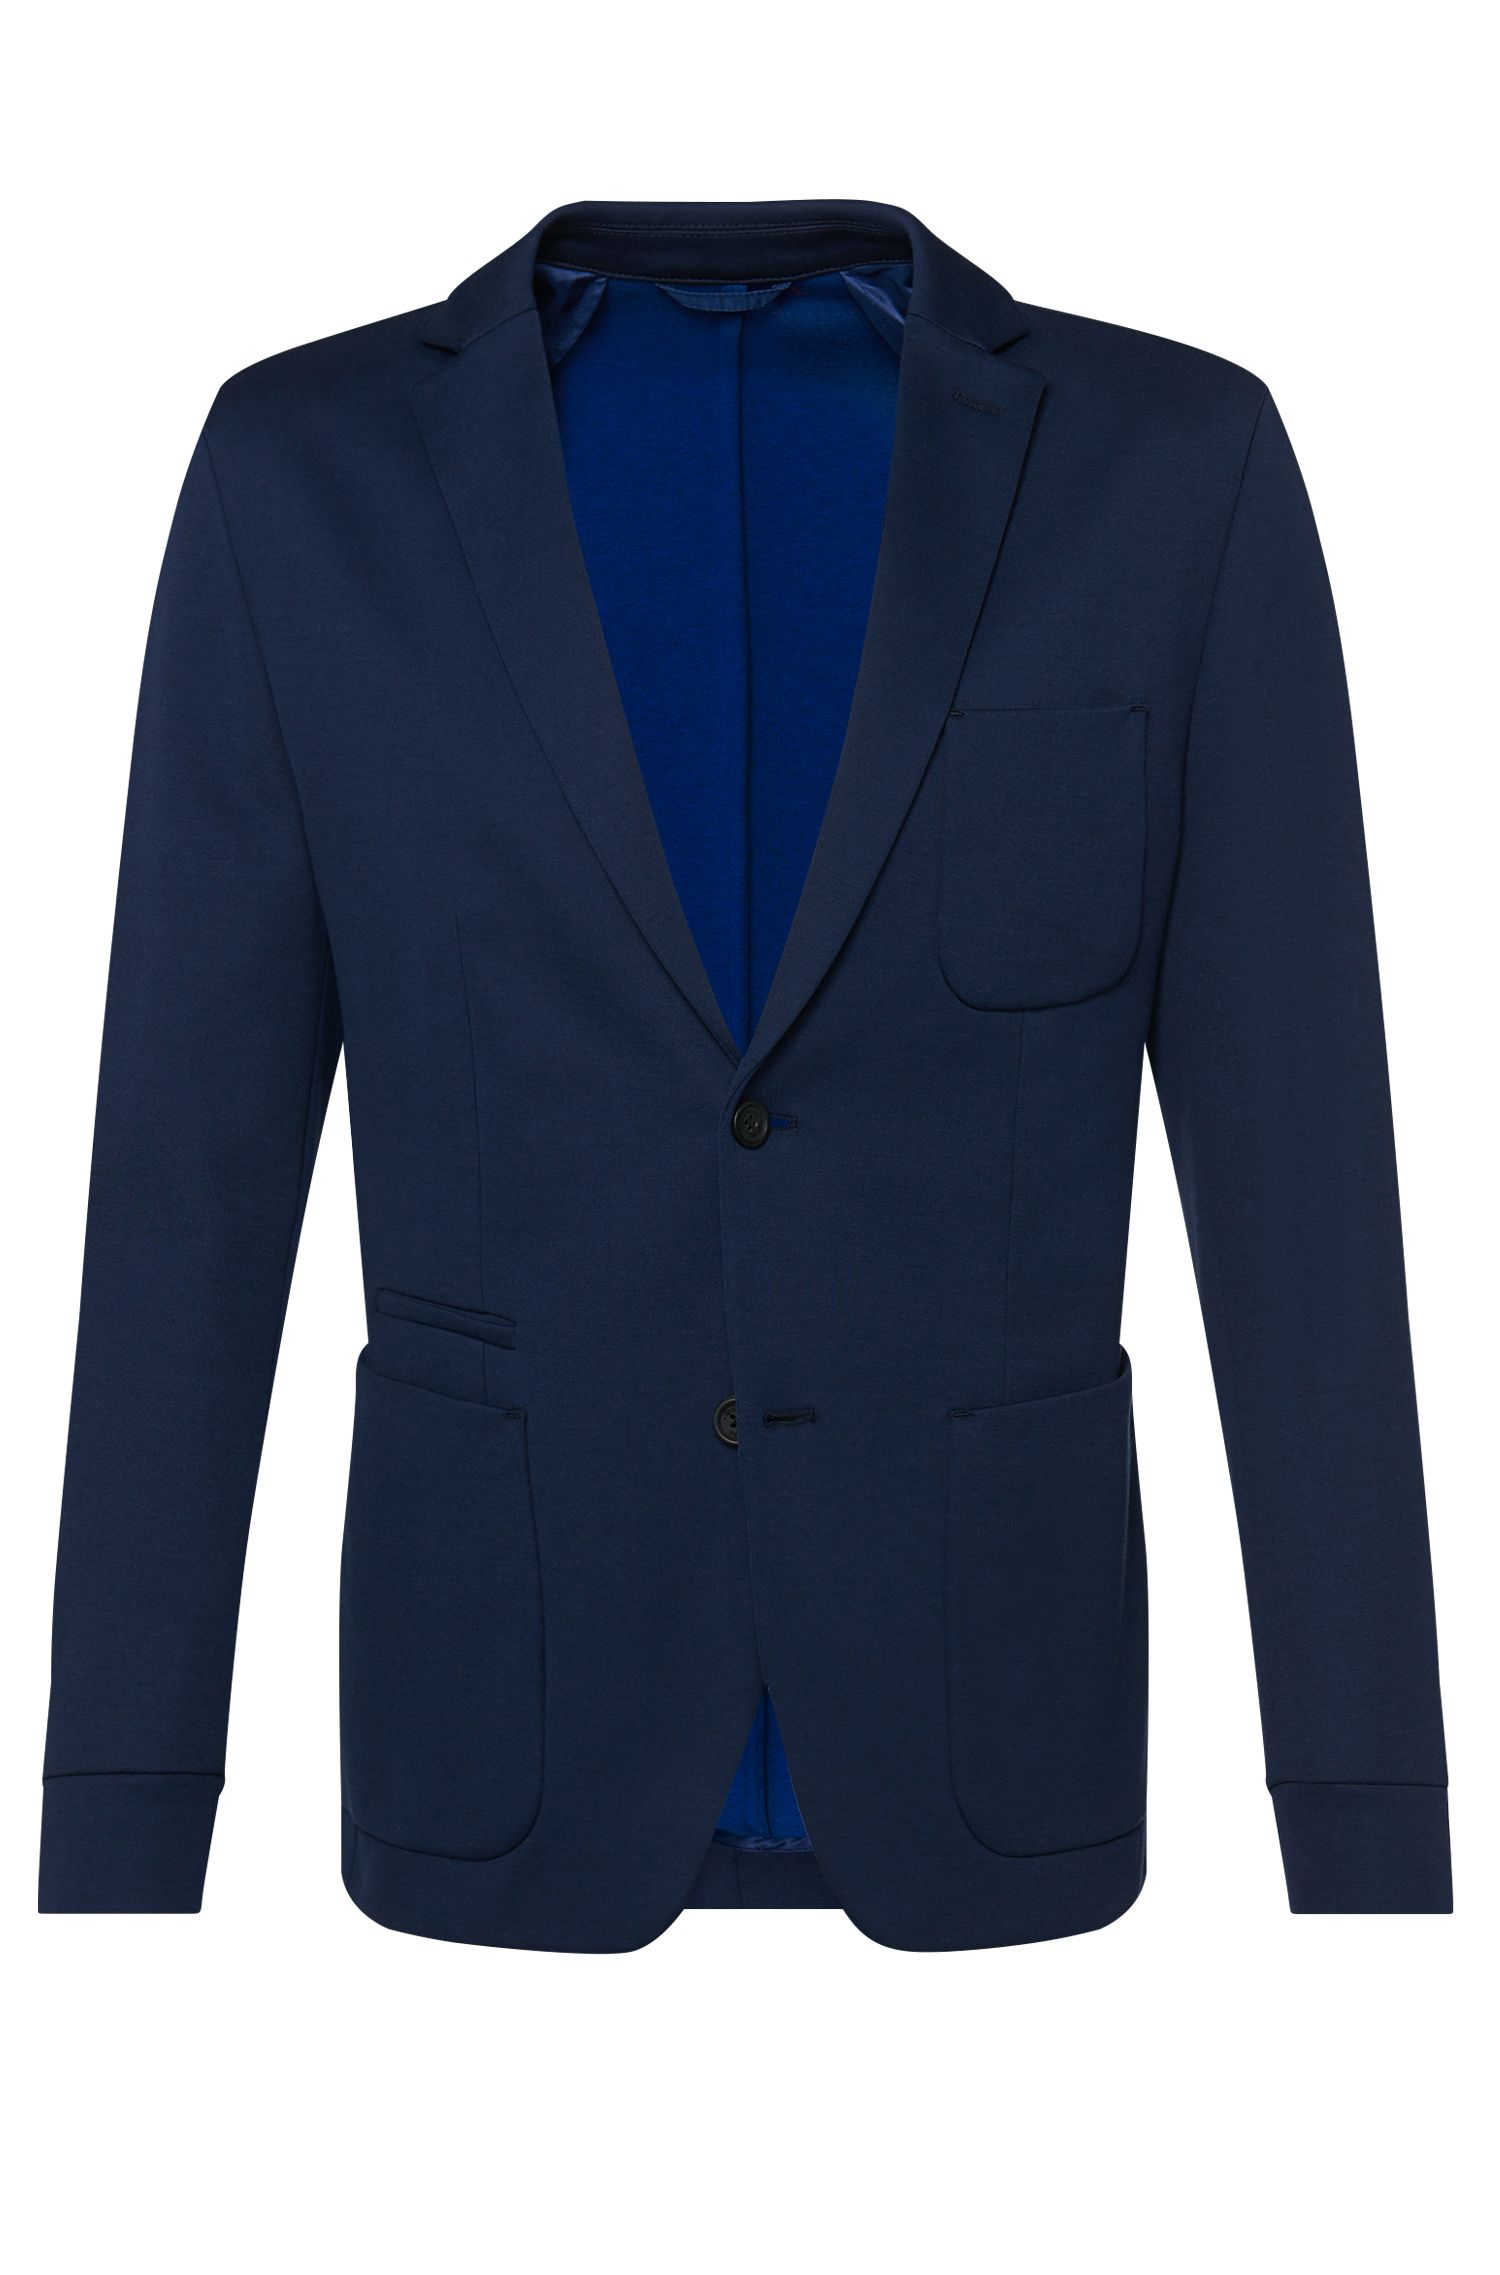 'Mourize' | Extra Slim Fit, Italian Cotton Jersey Sport Coat